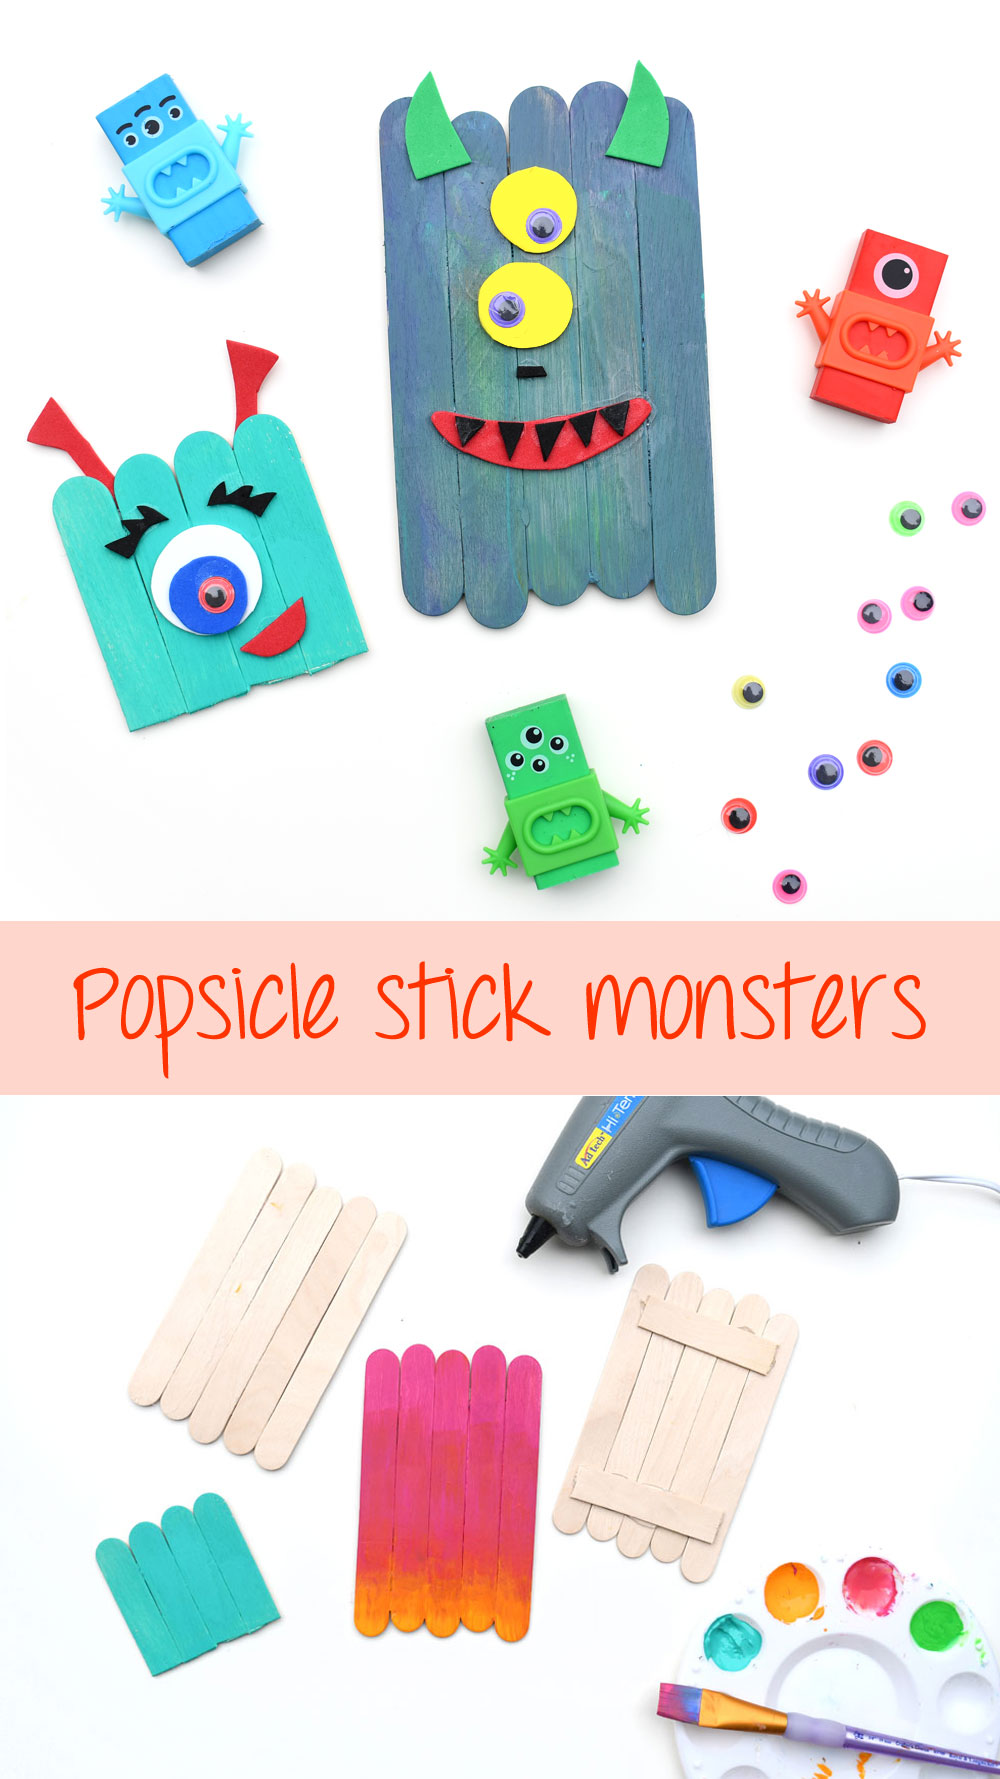 Colorful and creative popsicle stick monsters kids craft